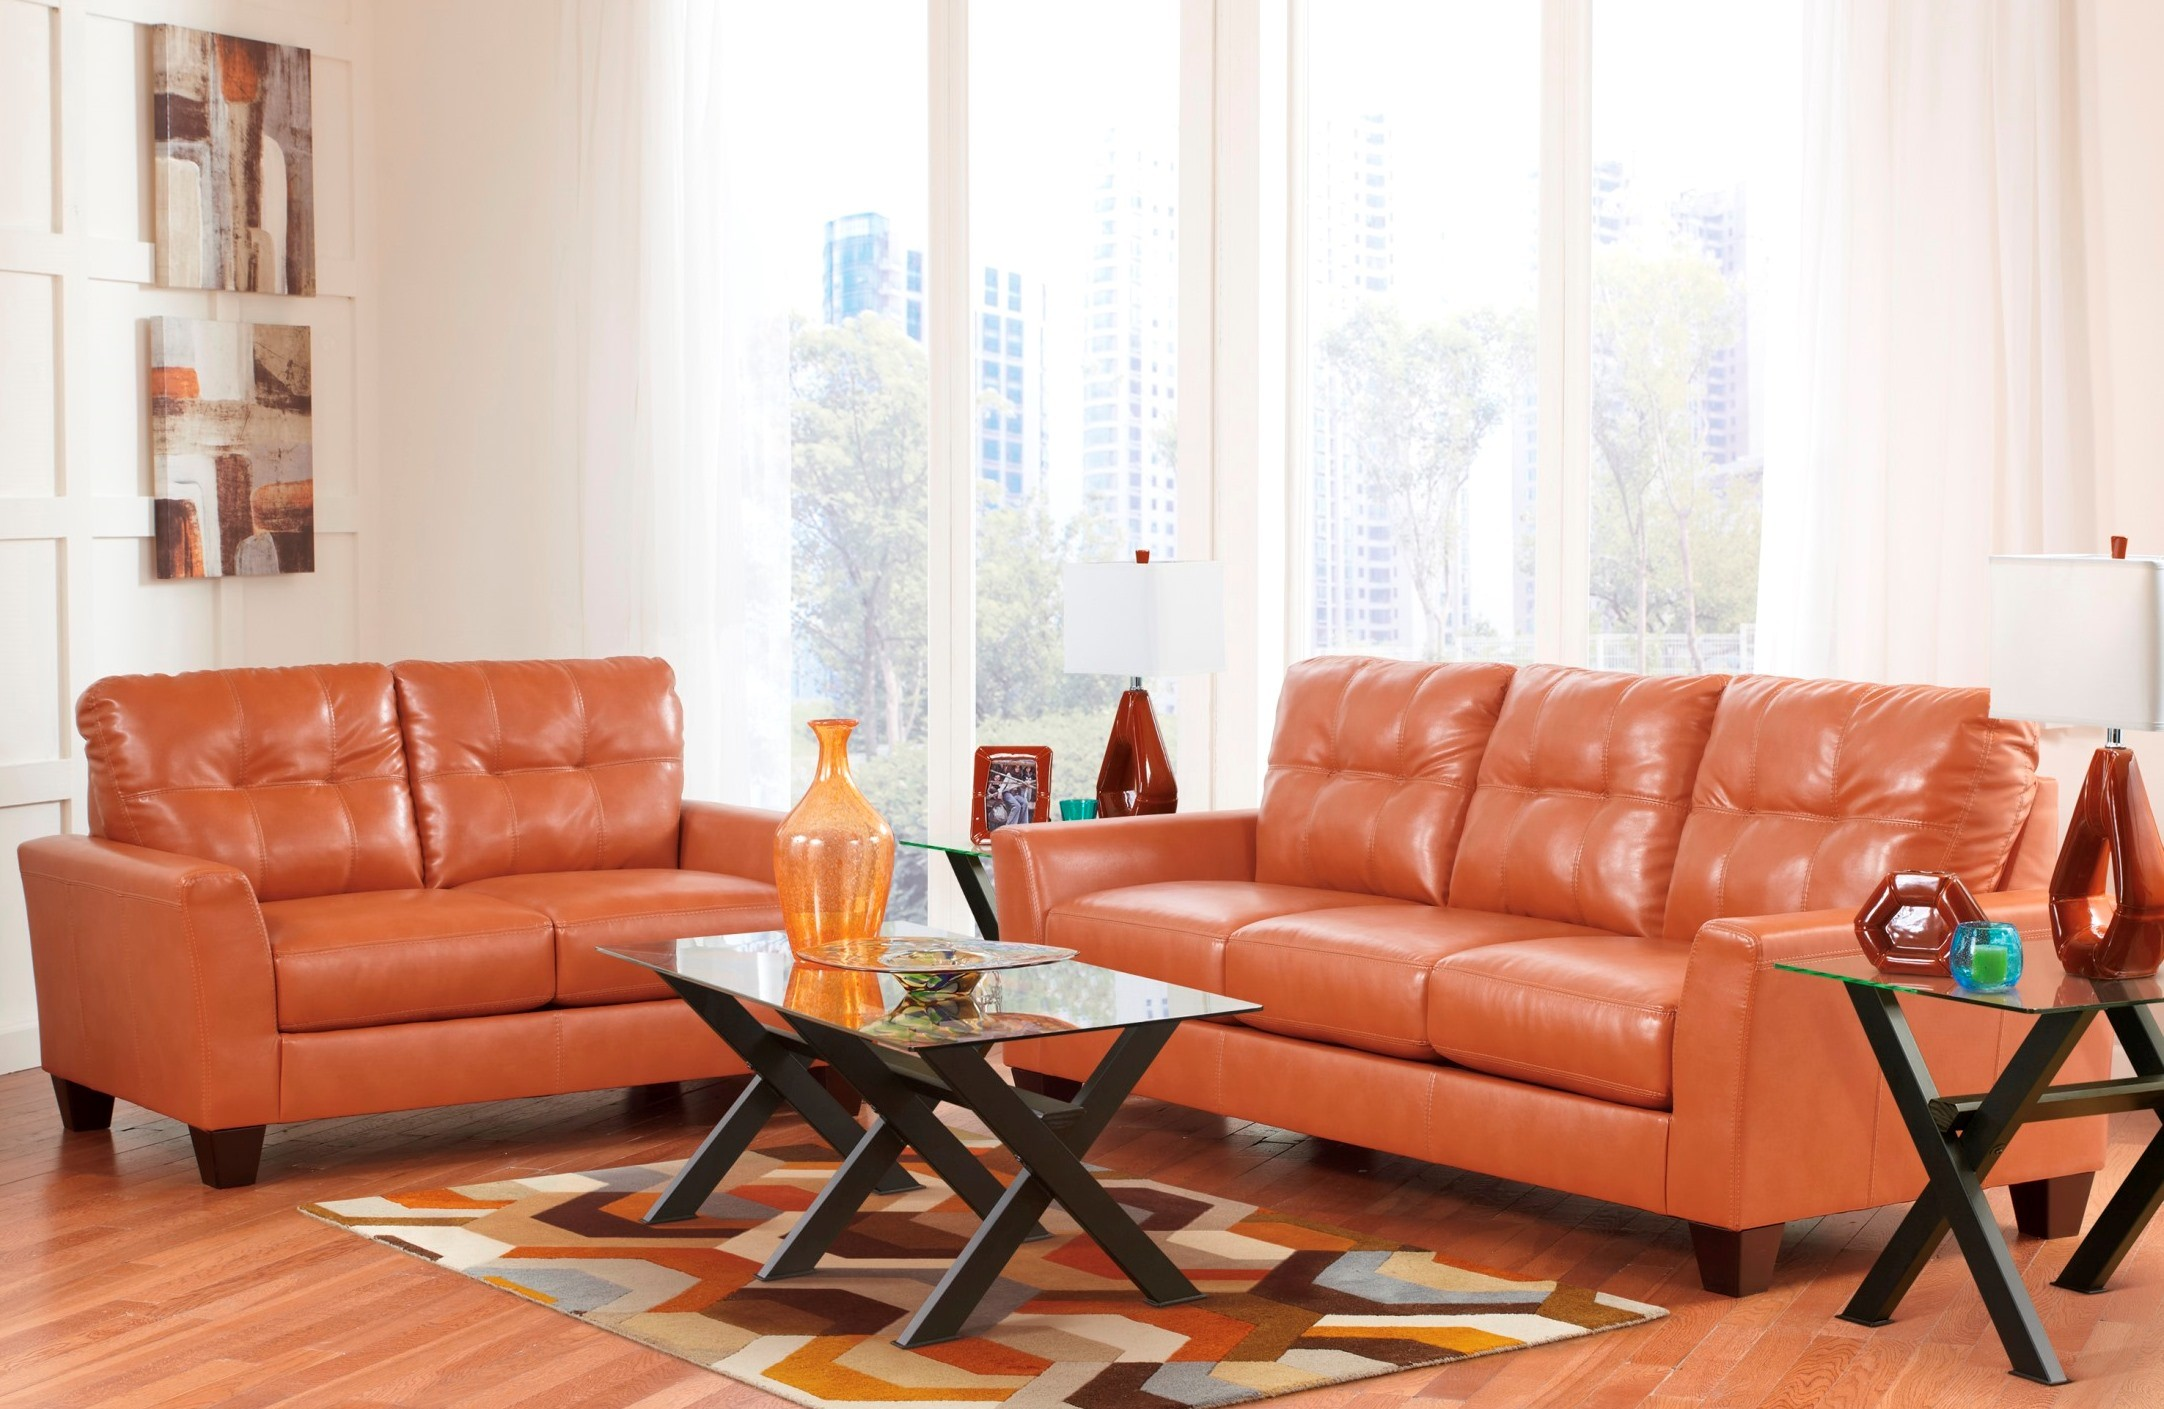 Paulie DuraBlend Orange Living Room Set From Ashley 27002 38 35 Coleman F